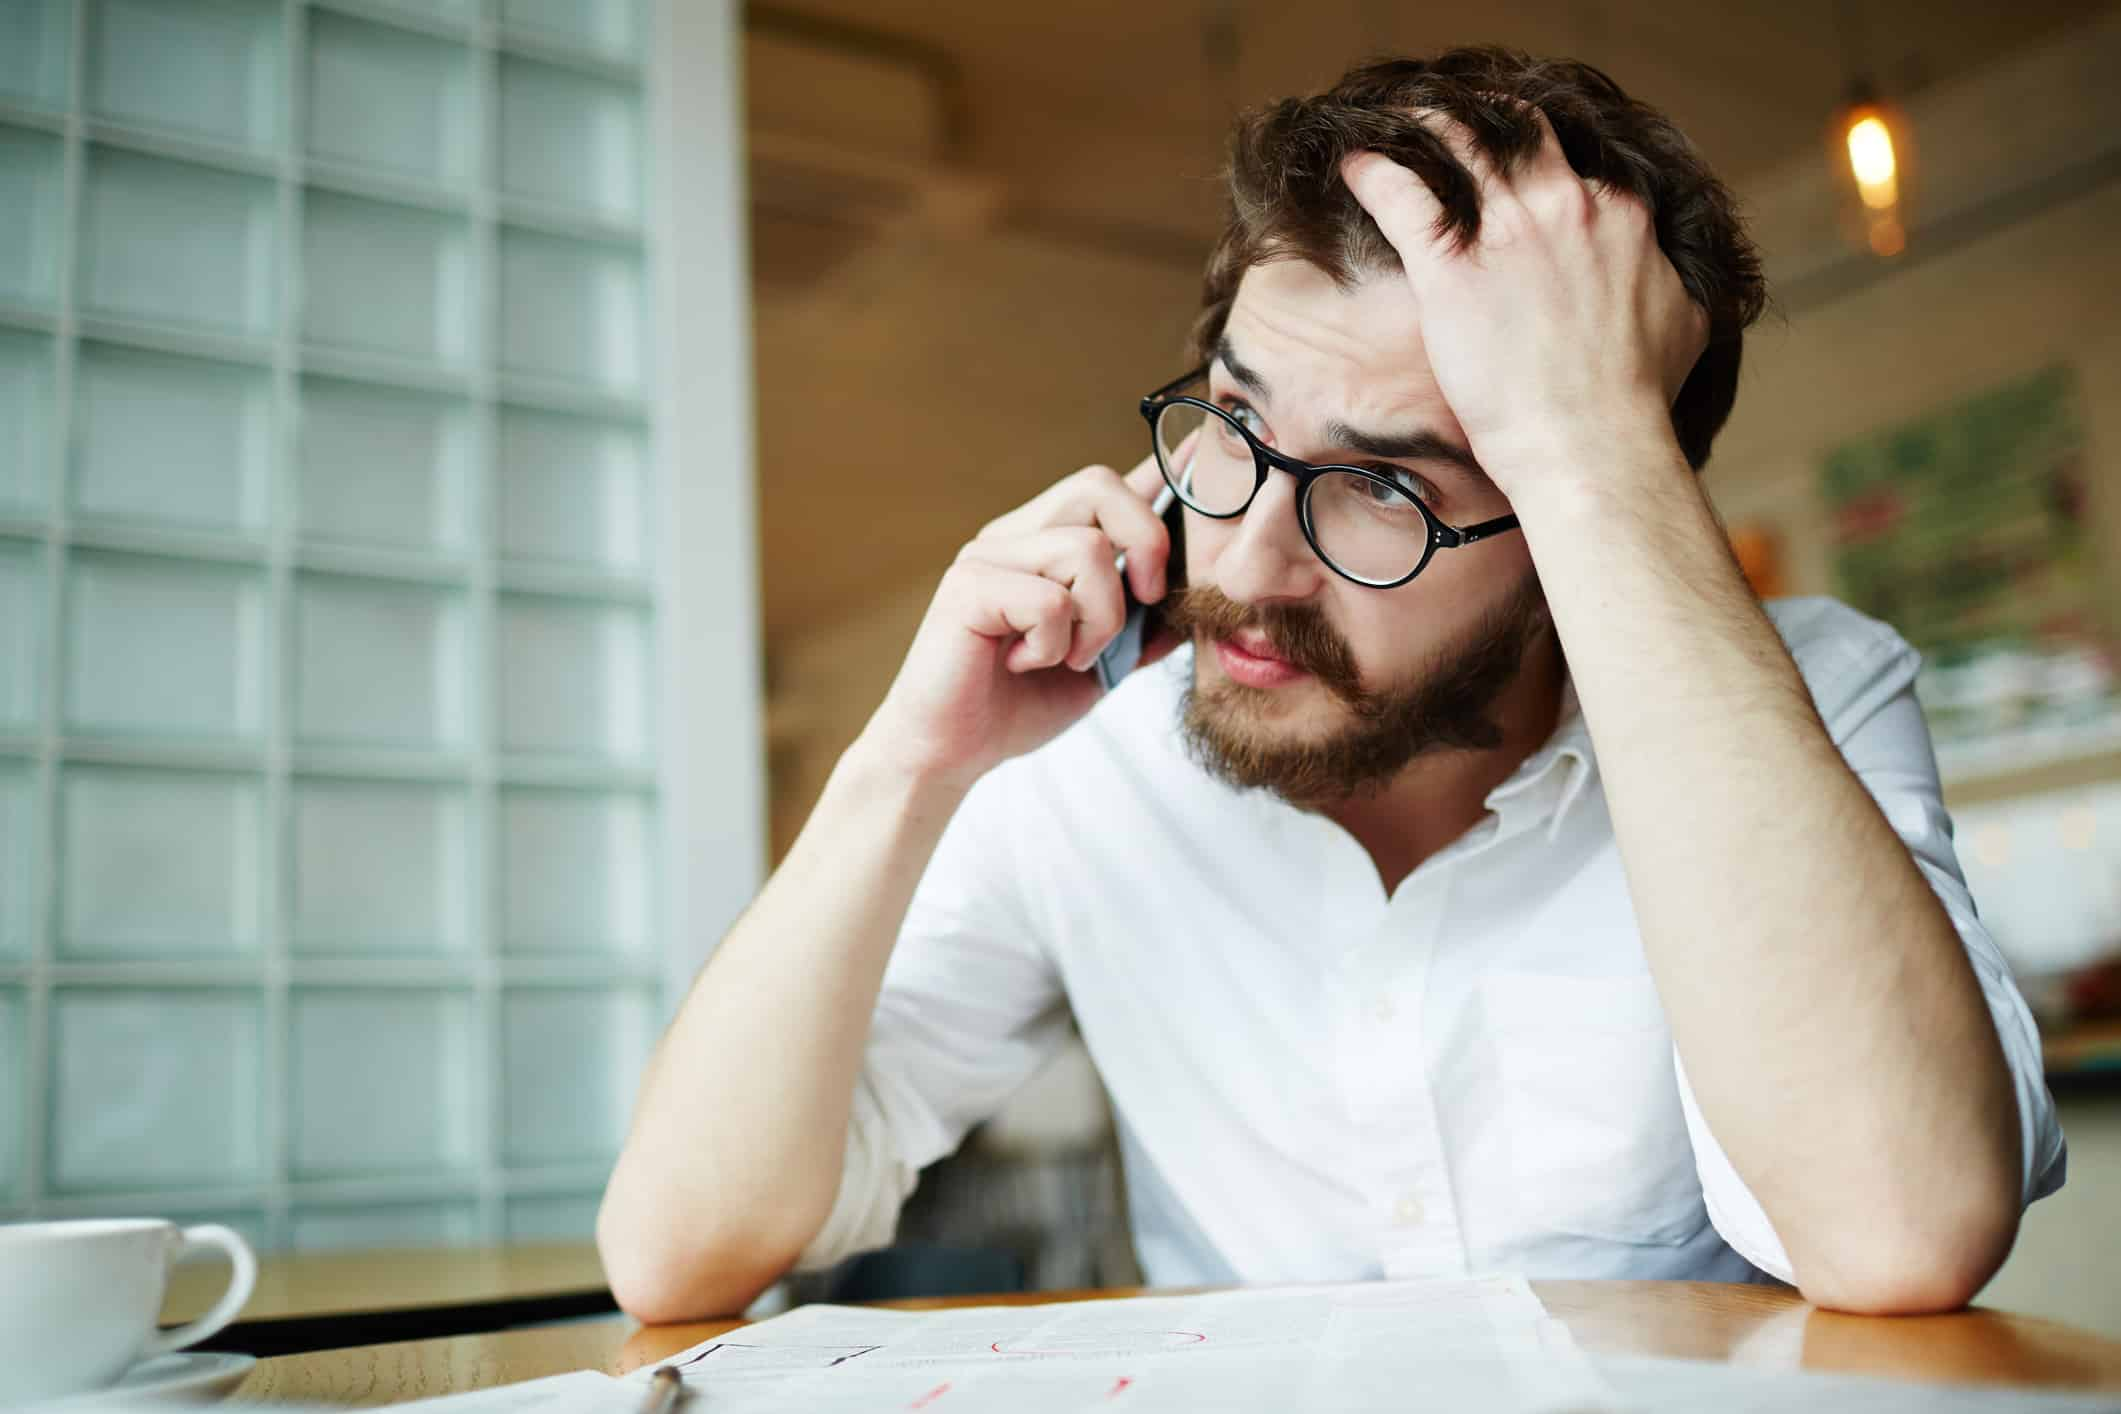 A stressed man demonstrates millennials don't know about money and it's costing them financially and physically